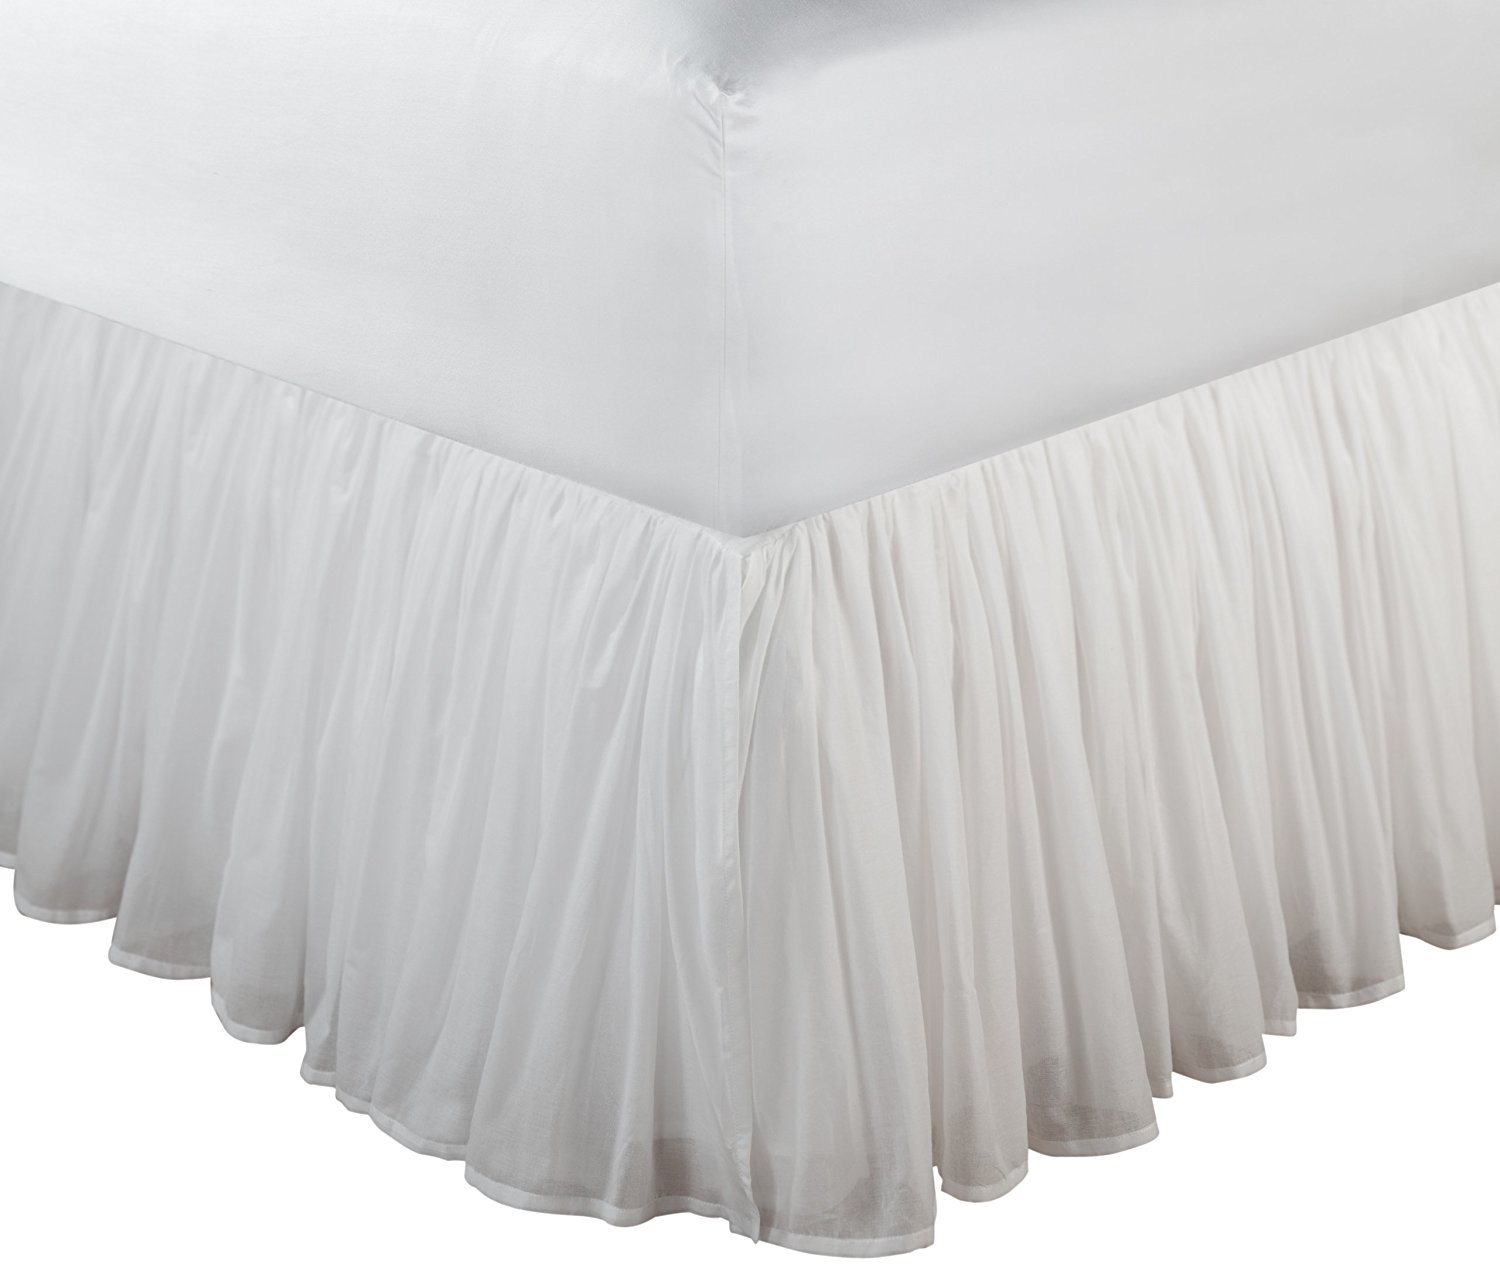 Greenland Home Fashions Cotton Voile White Bed Skirt